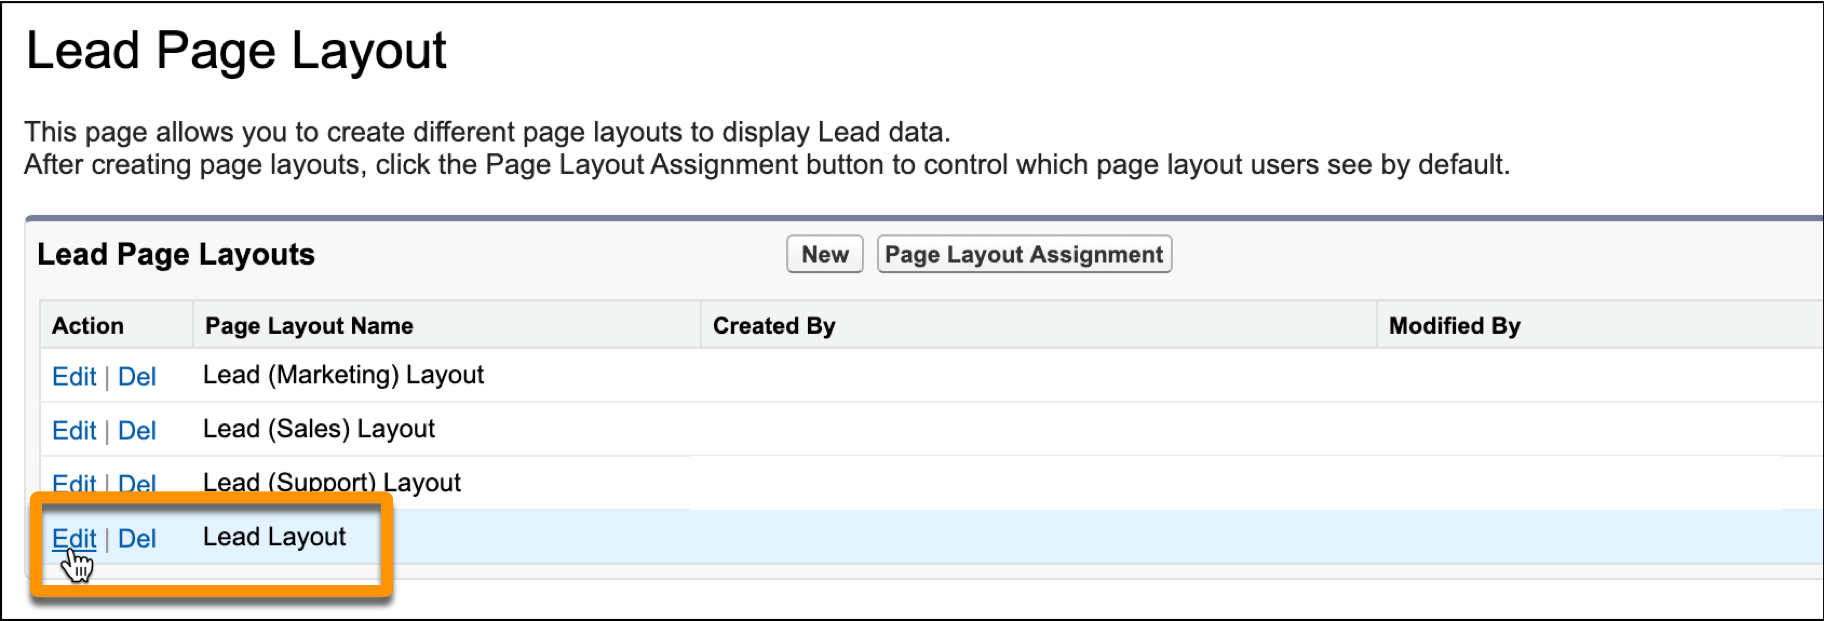 Lead Page Layout with Edit selected next to Lead Layout.